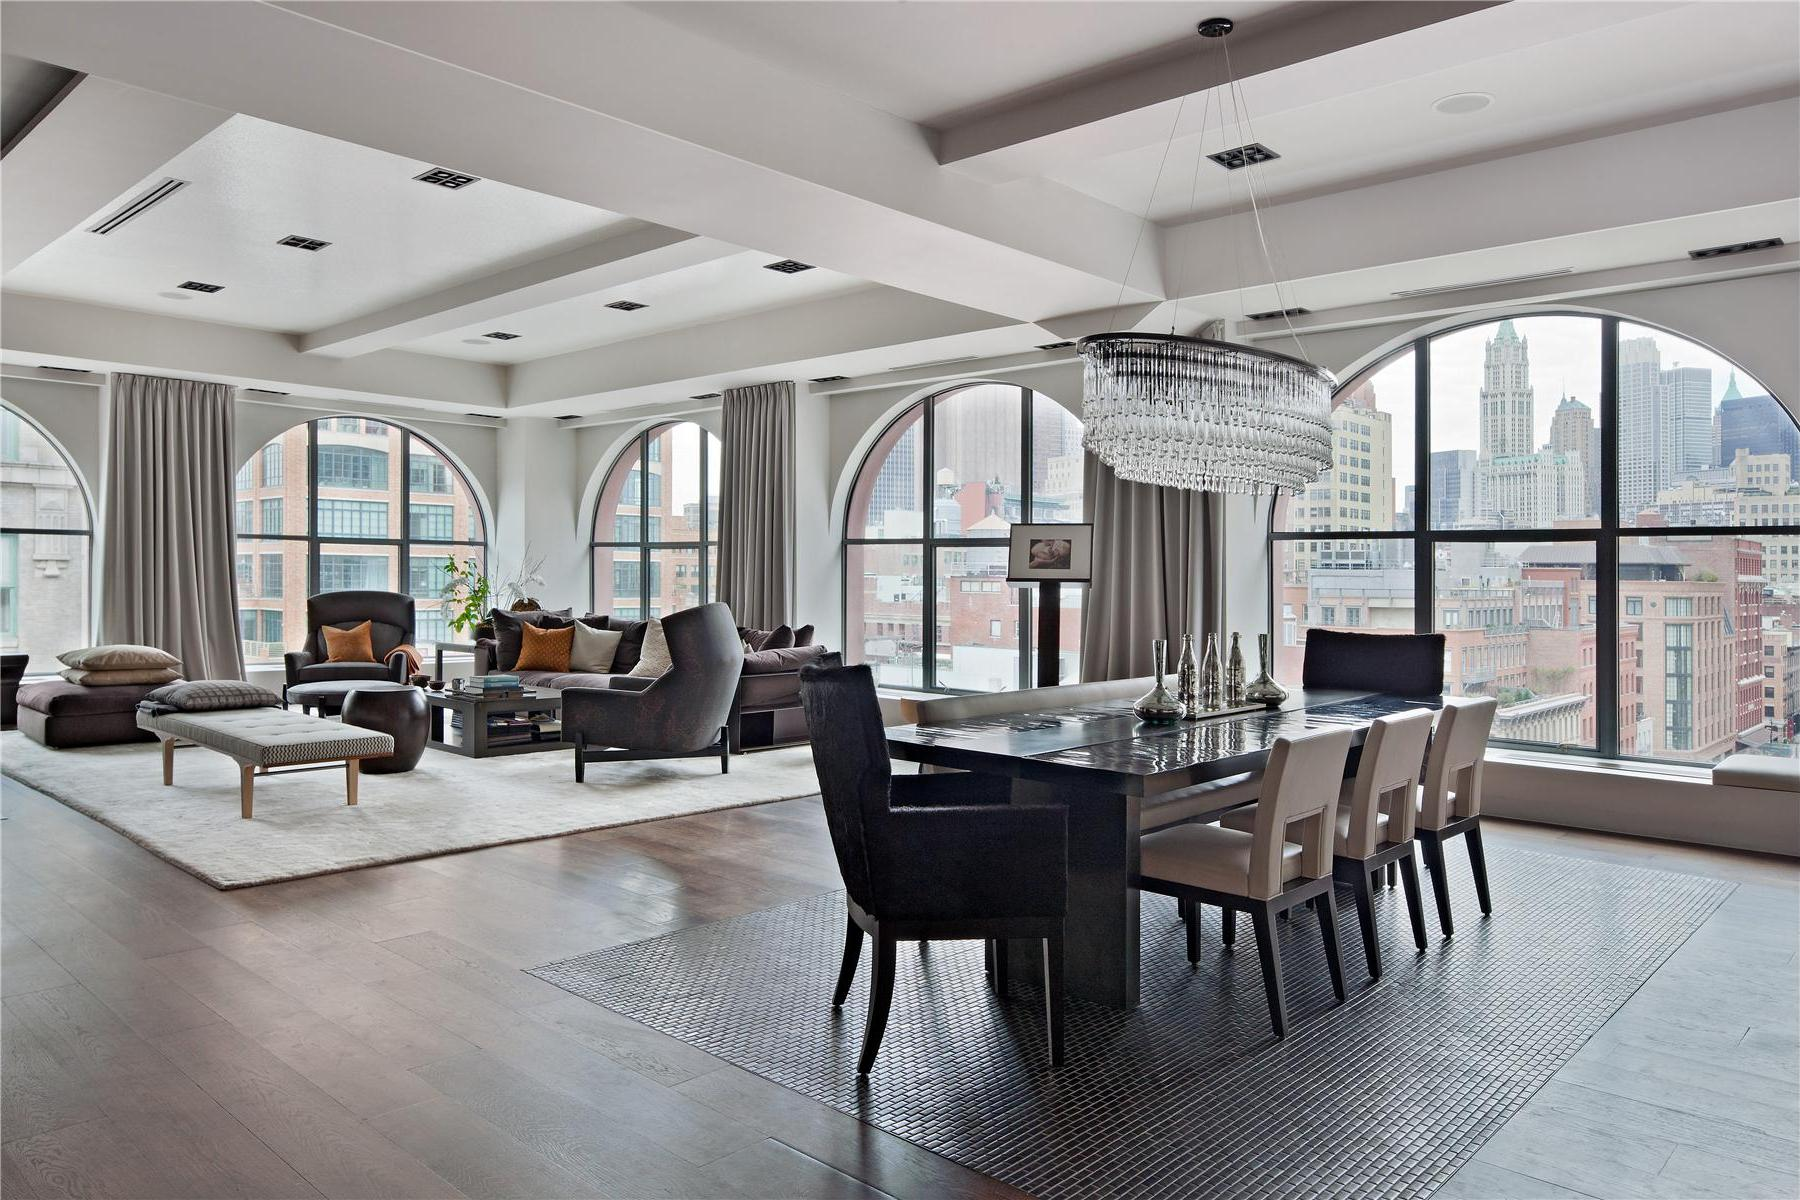 Spectacular 408 greenwich street loft in tribeca new york for New york loft apartments